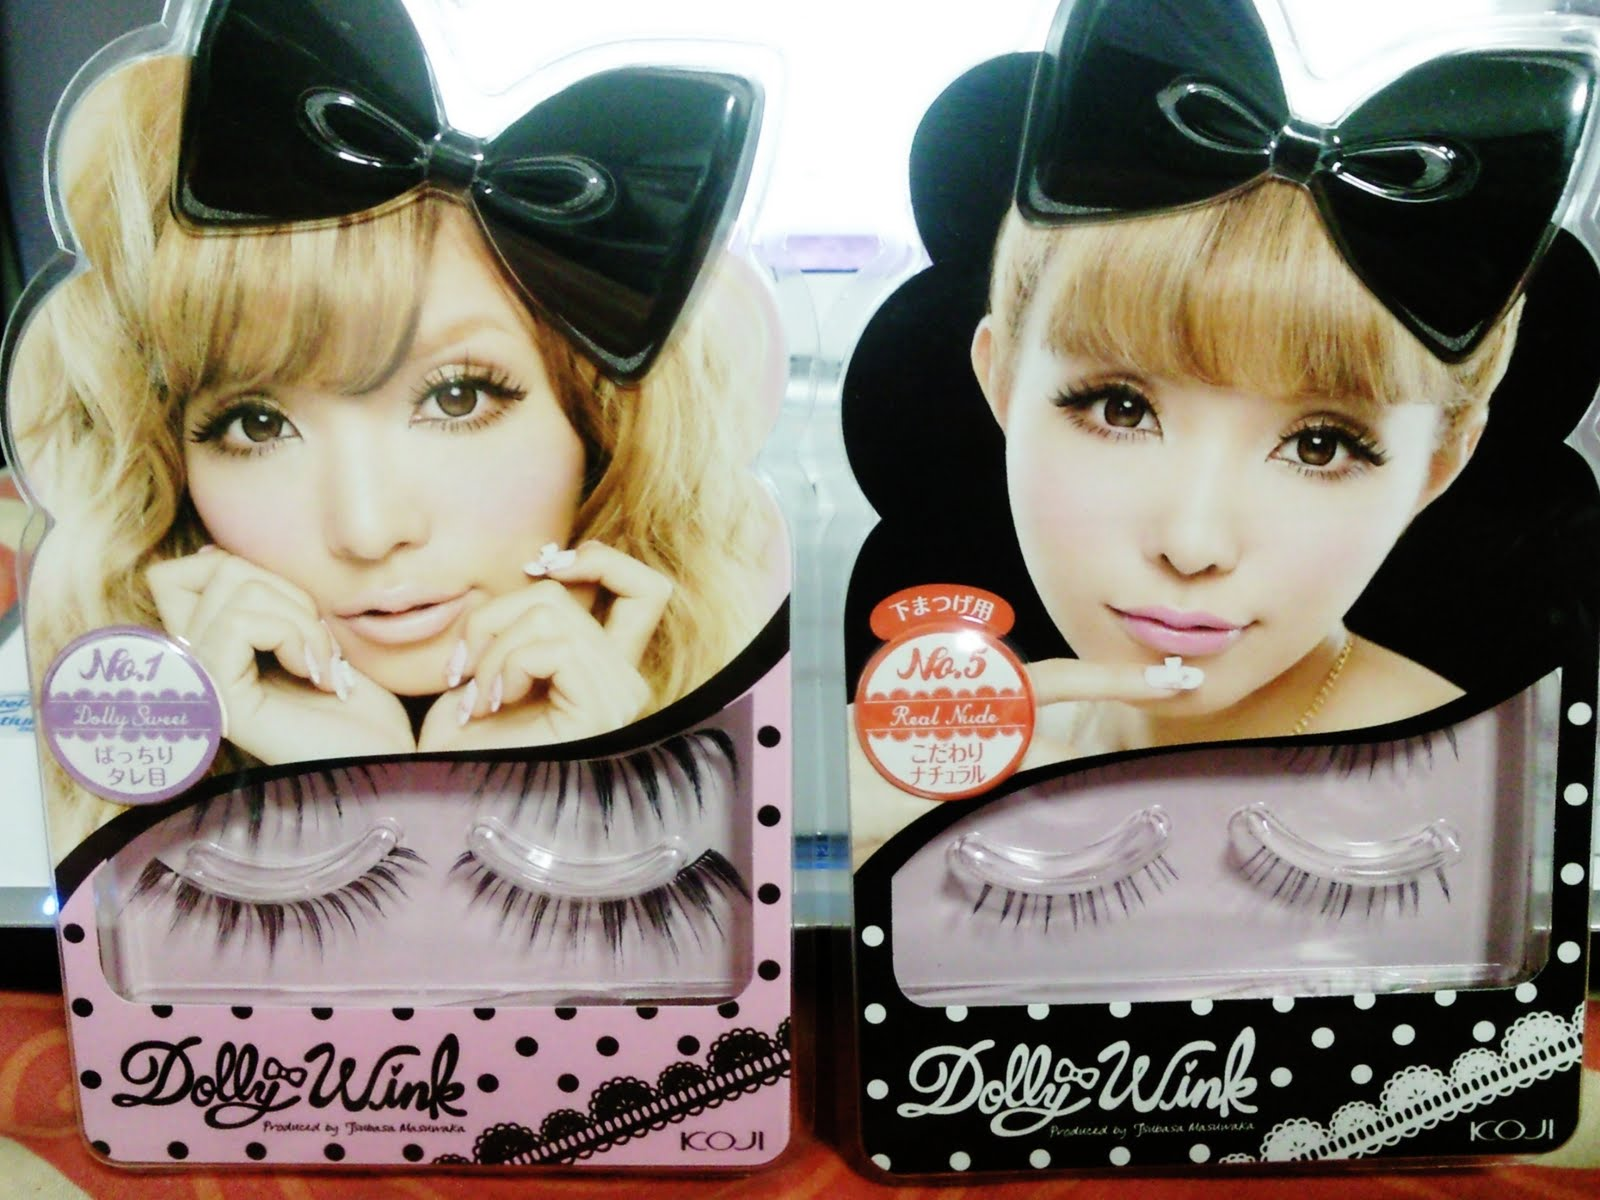 08fe7e902c8 Dolly Wink #1 - Dolly Sweet (left) was my favorite for a long time ^^ (The  one on the right is #5 Real Nude) I liked #2 Sweet Girly too, but in the  end I ...